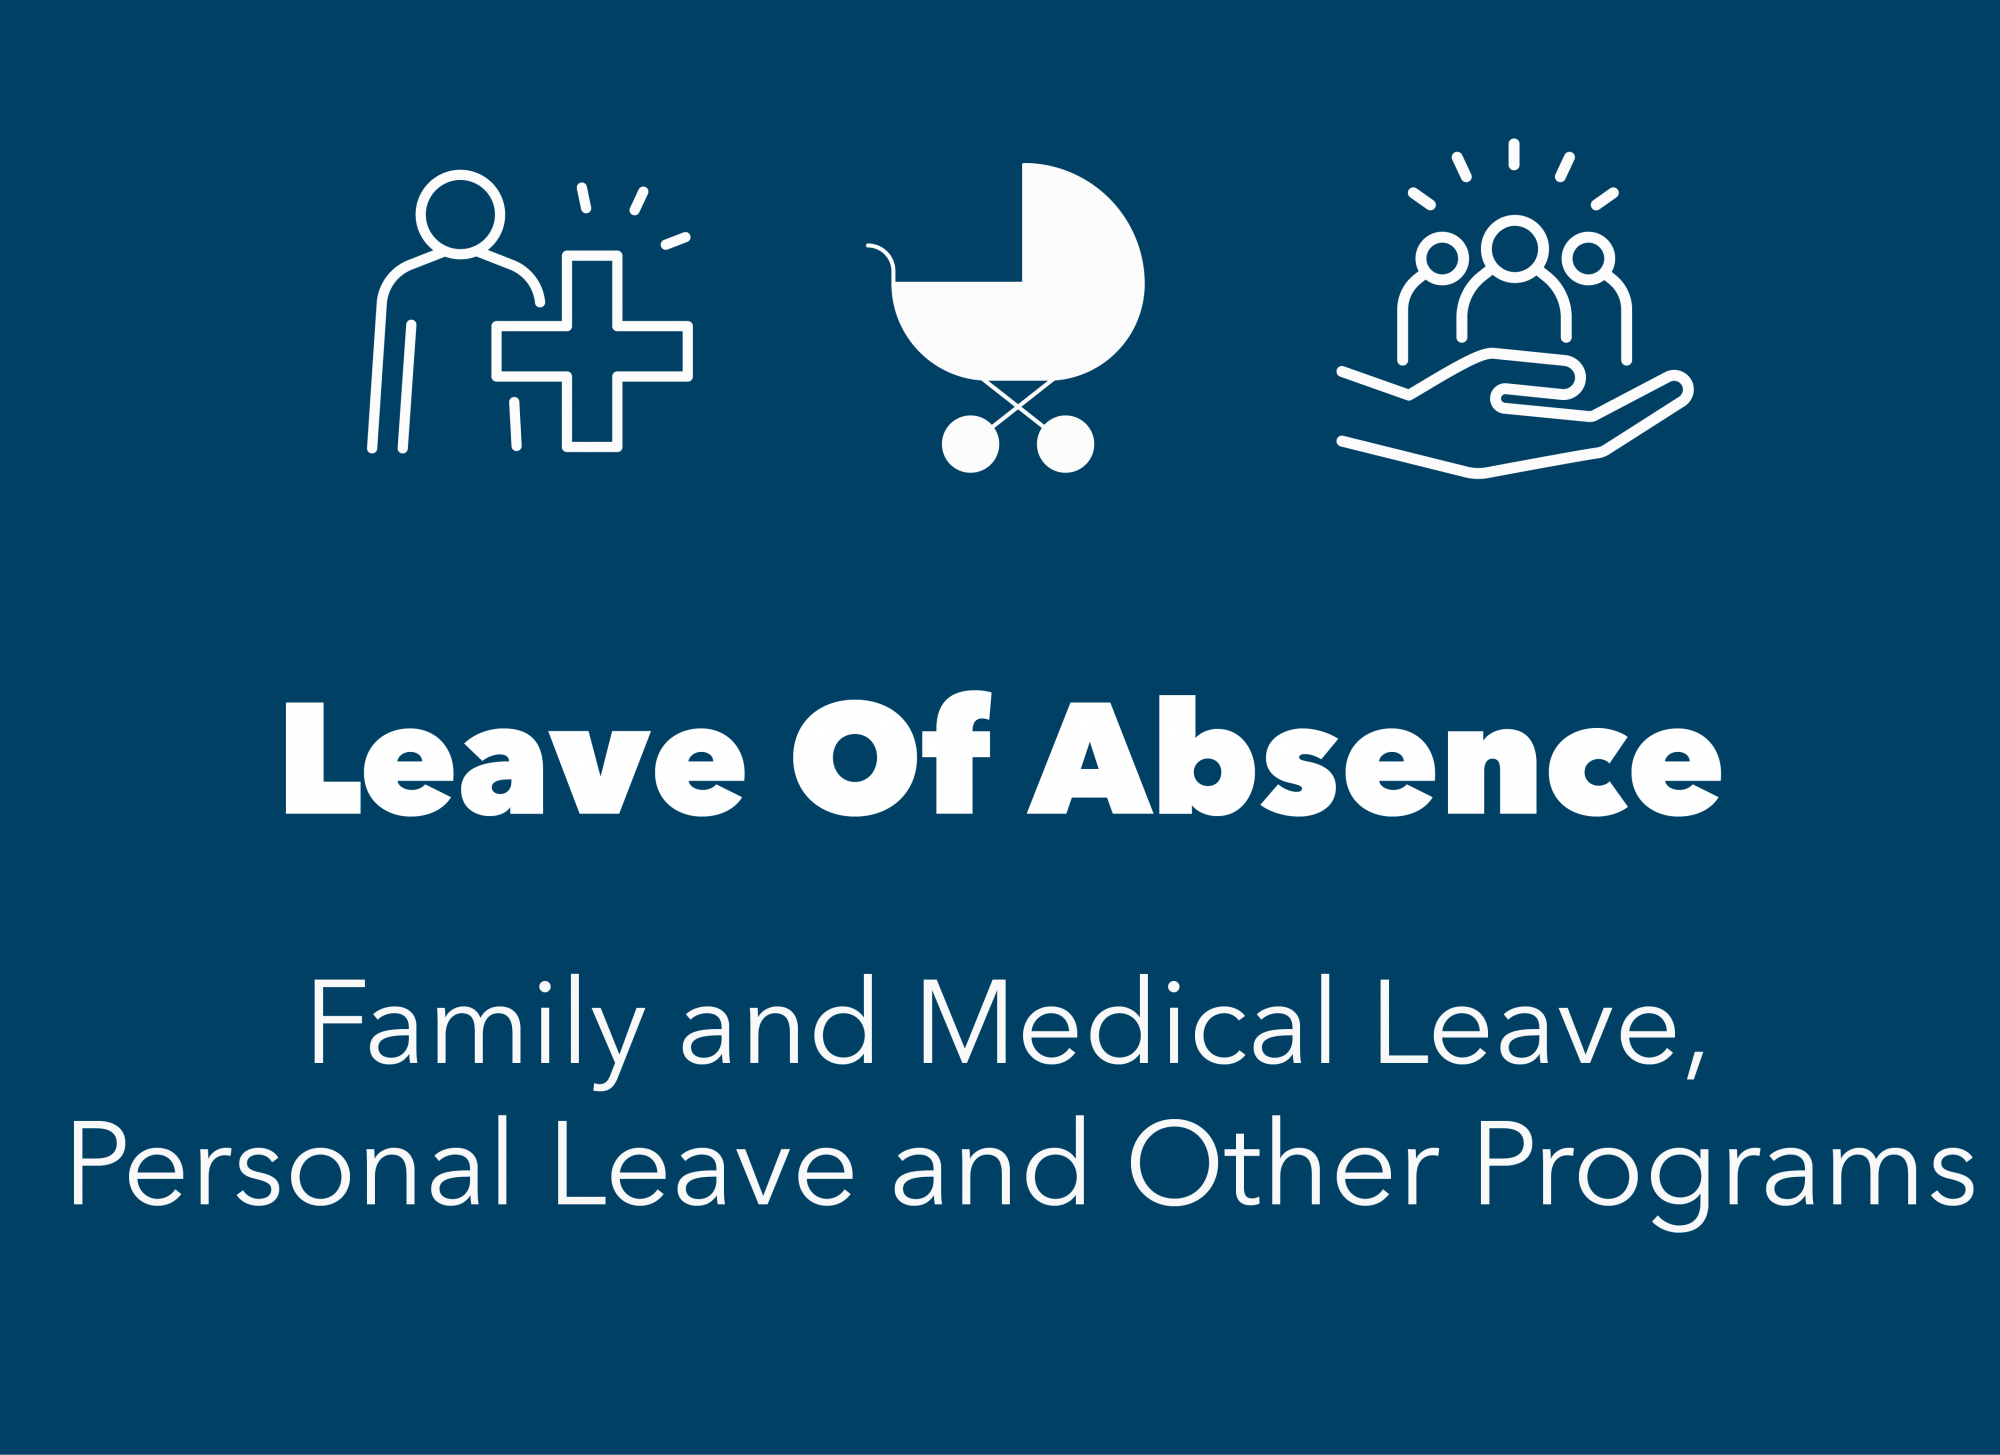 blue box with white icons of baby carriage, hand holding people and medical symbol. Text reads Leave of Abscene, Family and Medical Leave, Personal Leave and Other programs.